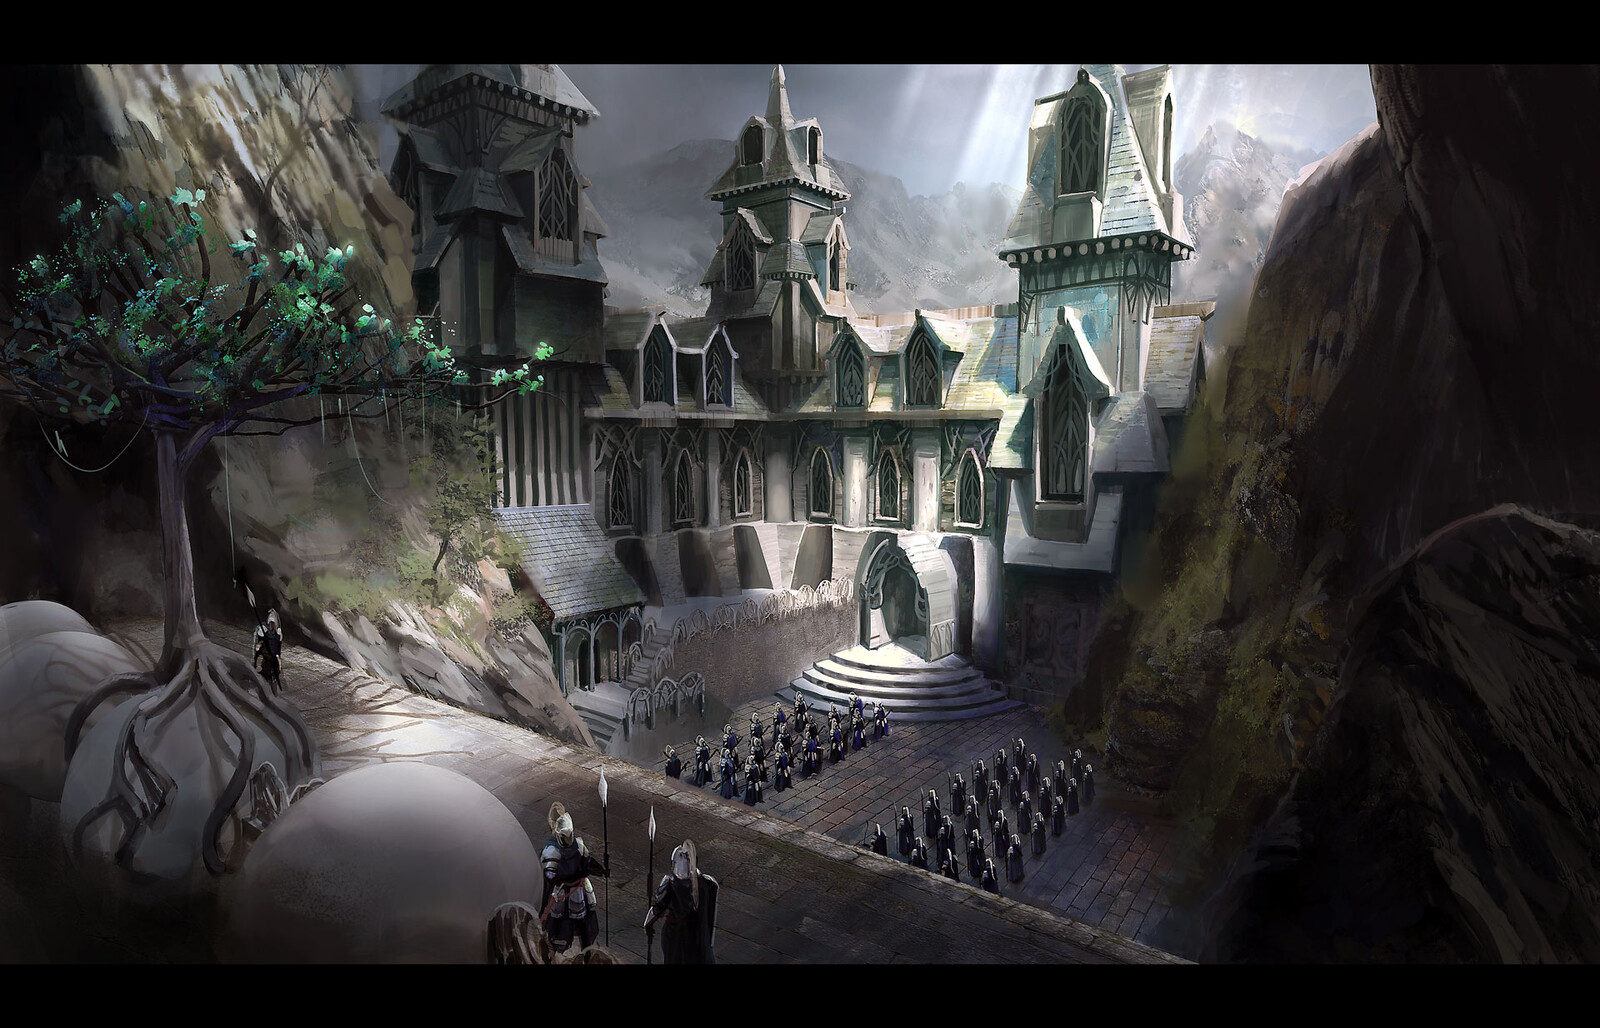 Gondolin Silver gate - From the Silmarillion